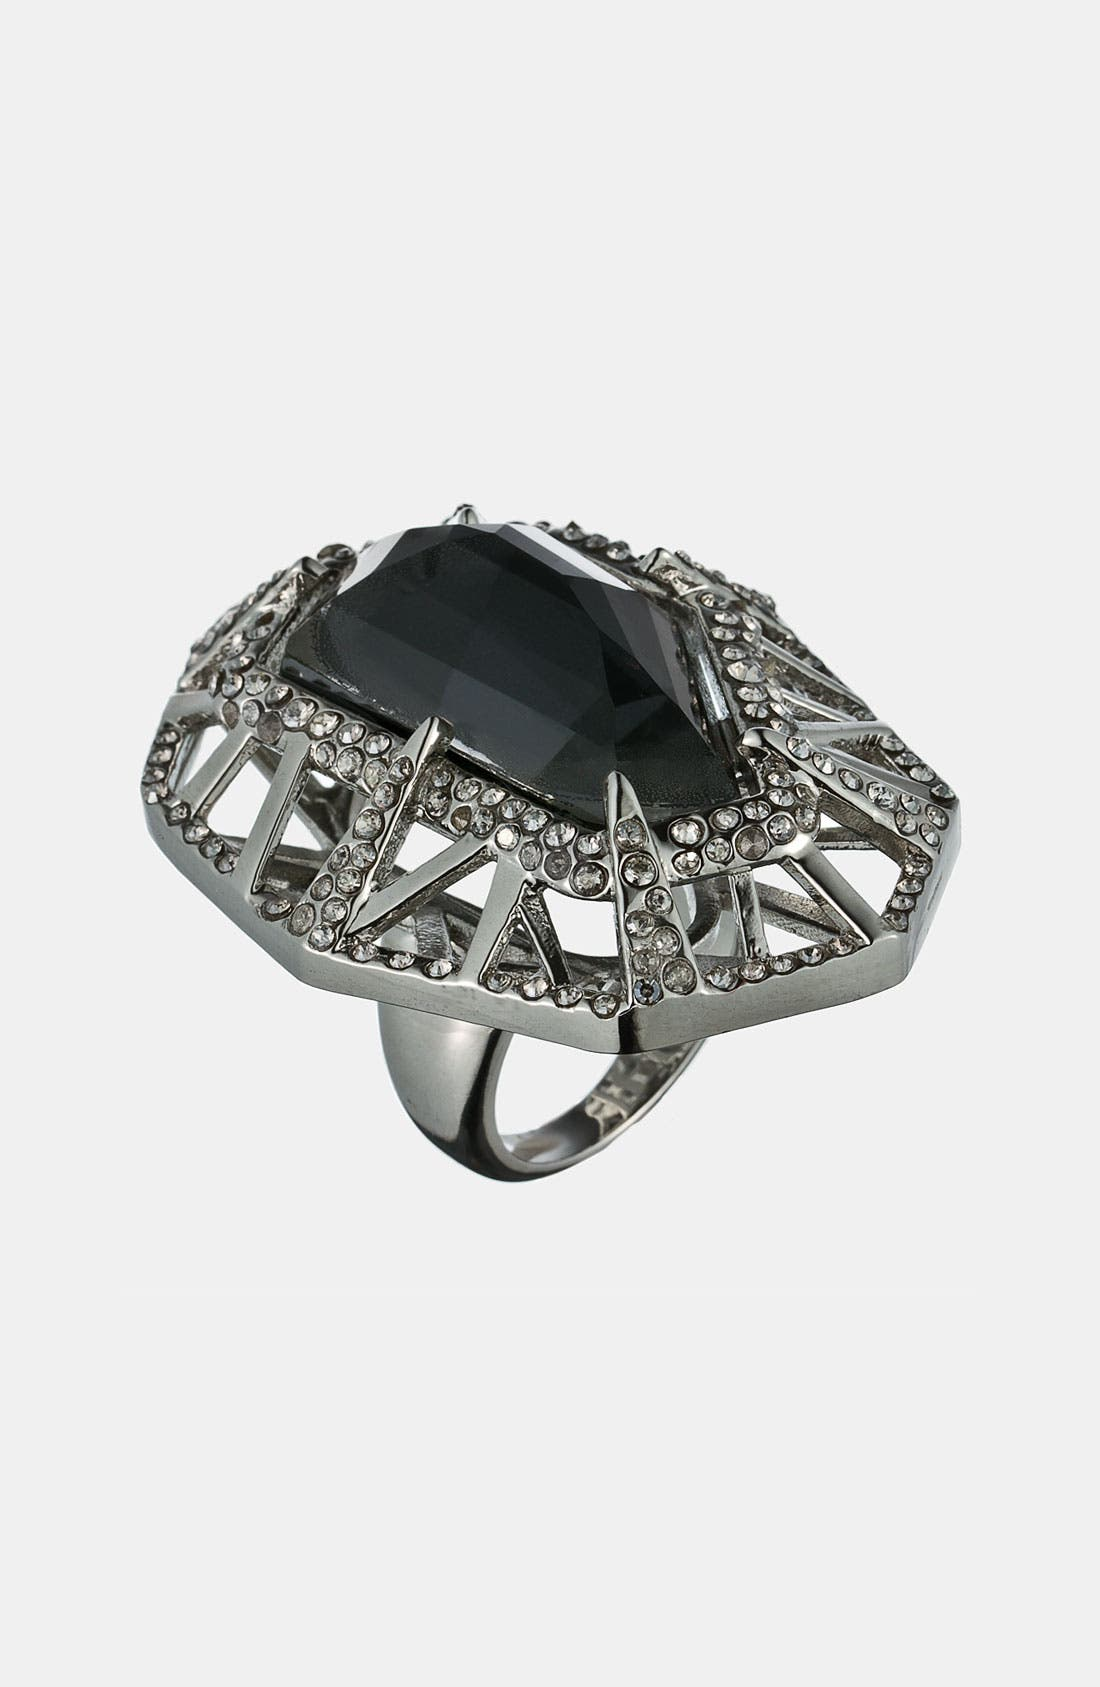 Alternate Image 1 Selected - Alexis Bittar 'Miss Havisham - Delano' Cocktail Ring (Limited Edition)